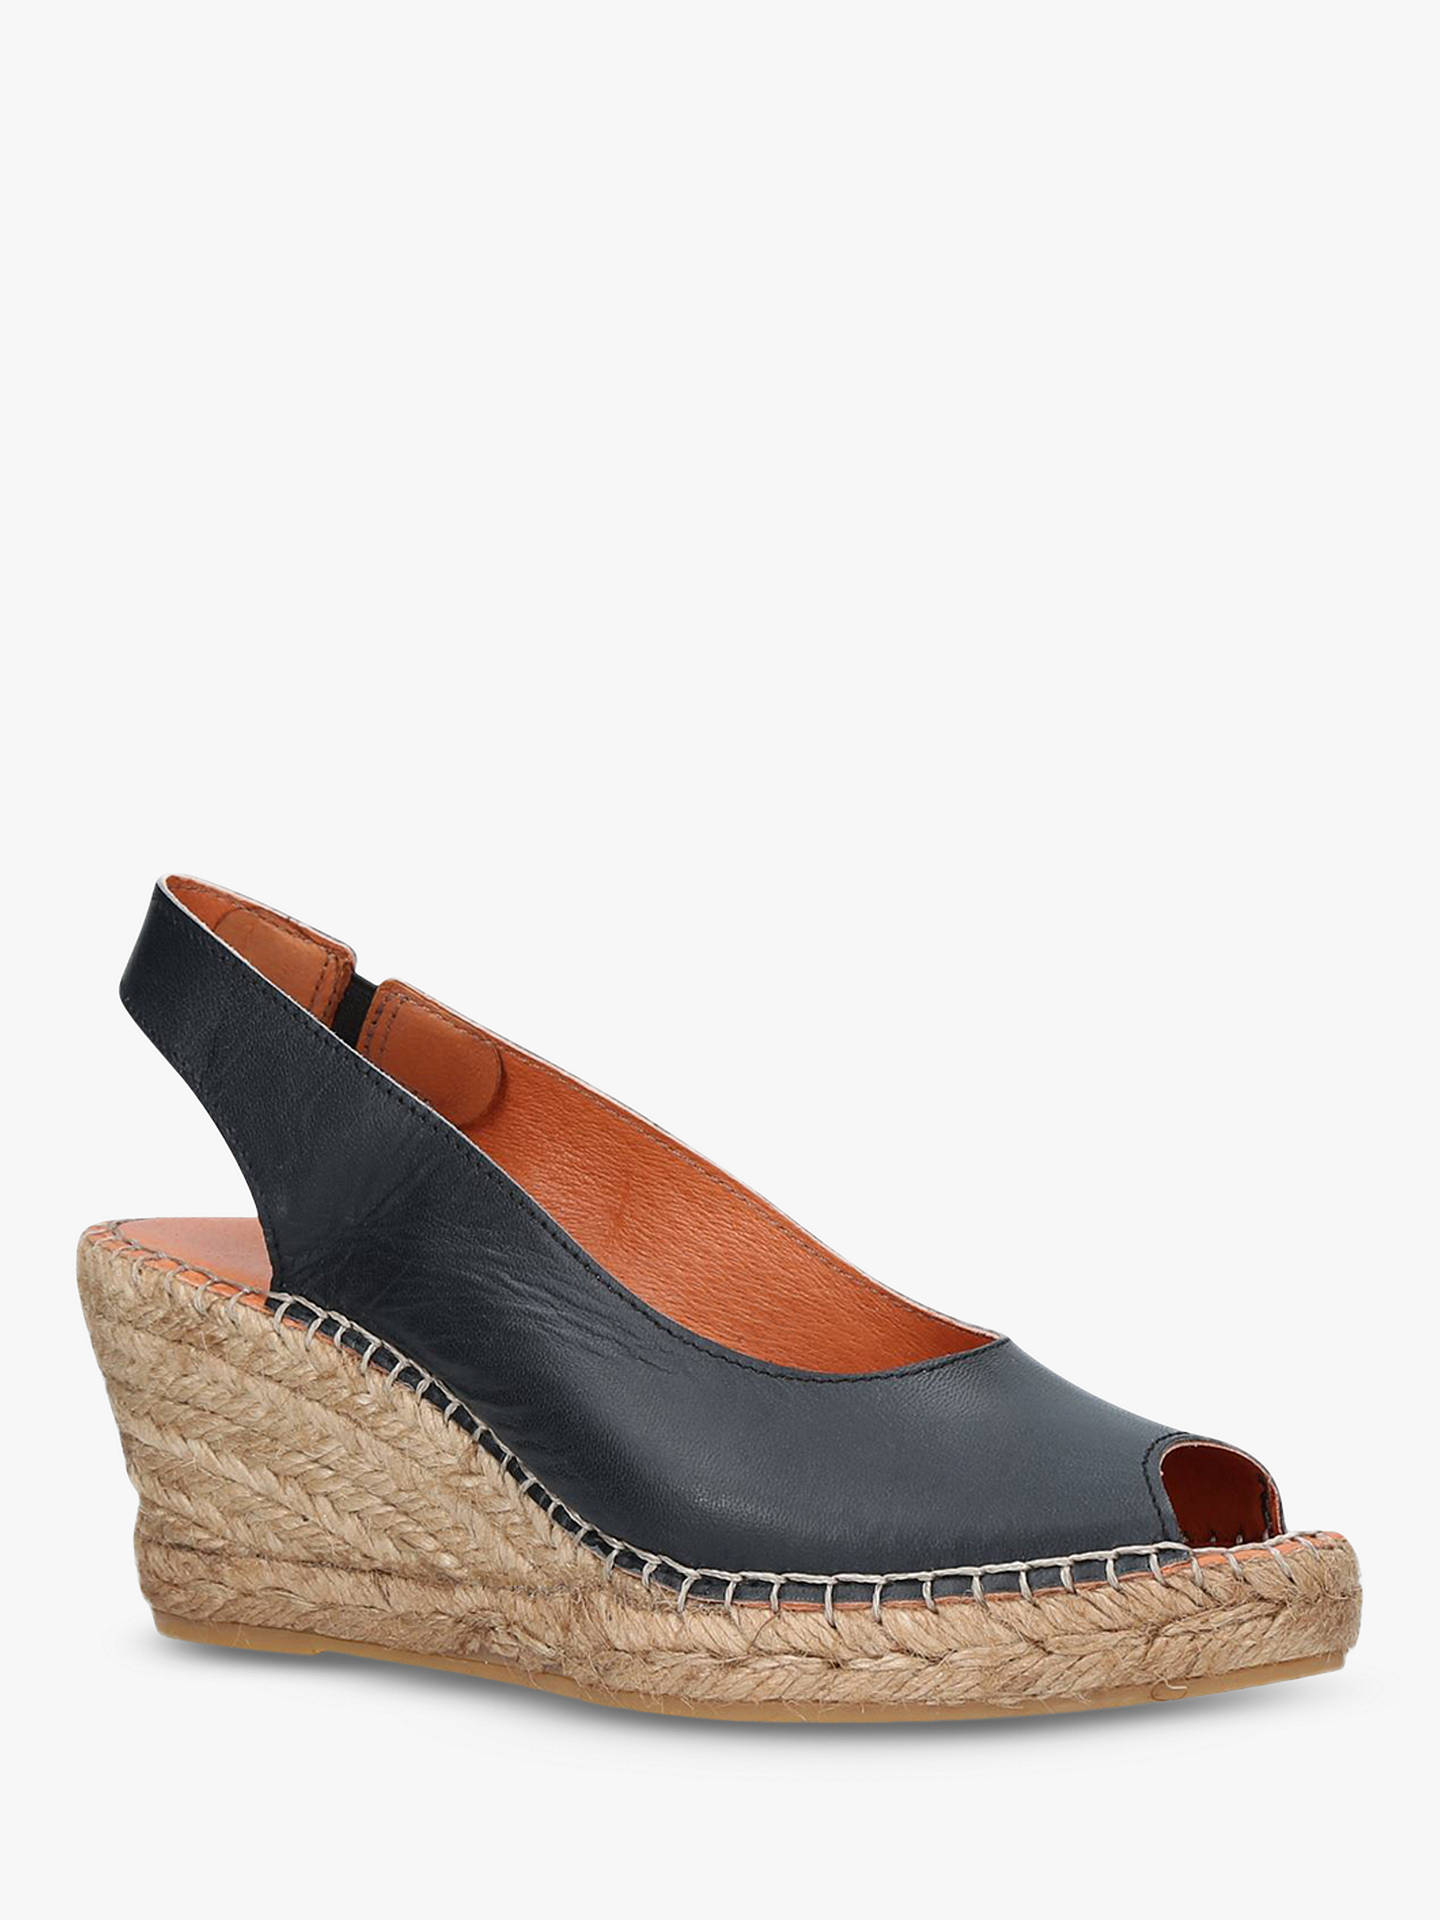 db655847d11 Carvela Comfort Sharon Wedge Heel Espadrille Sandals, Black Leather